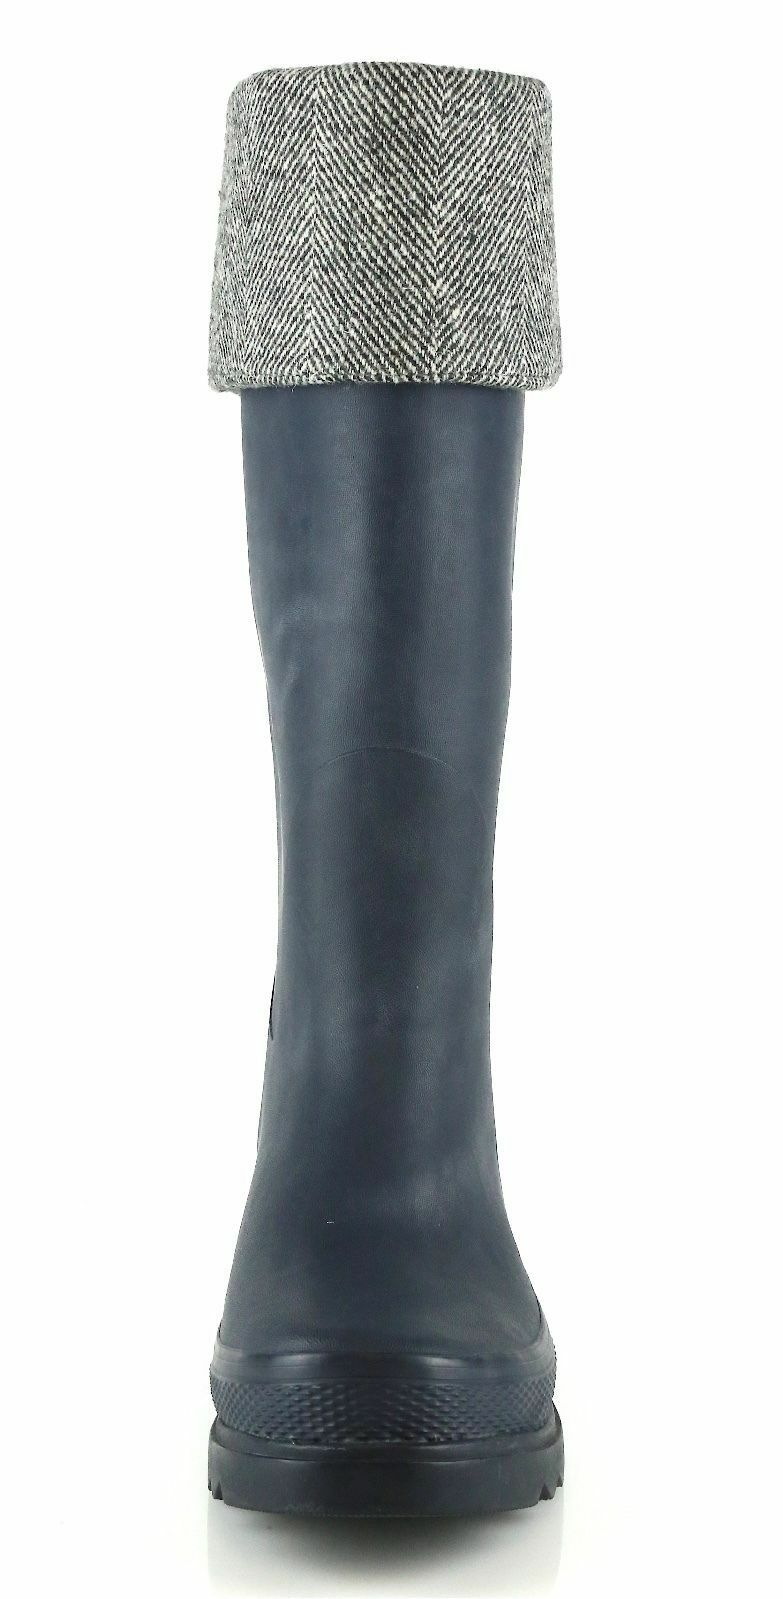 Cole Haan Rubber Chatham Woman's India Ink Rubber Haan Rainboots 8492 Size 6 M 5fb761